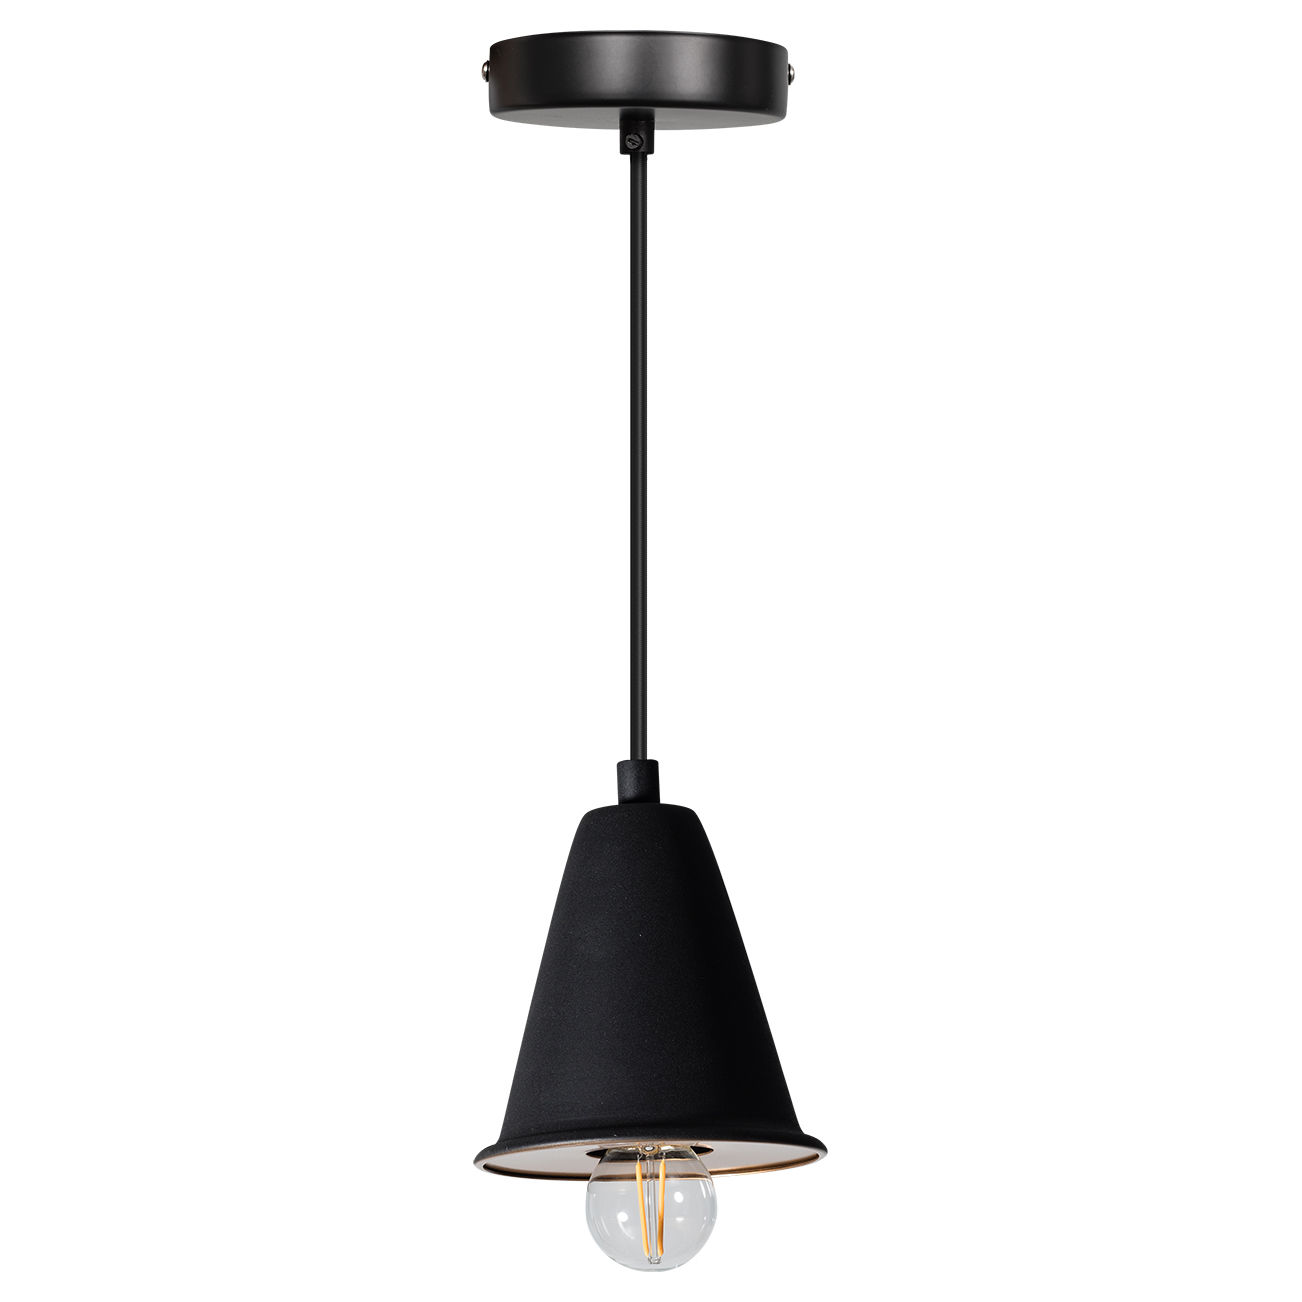 OUTLET - Midnight hanglamp ETH � 11,5cm